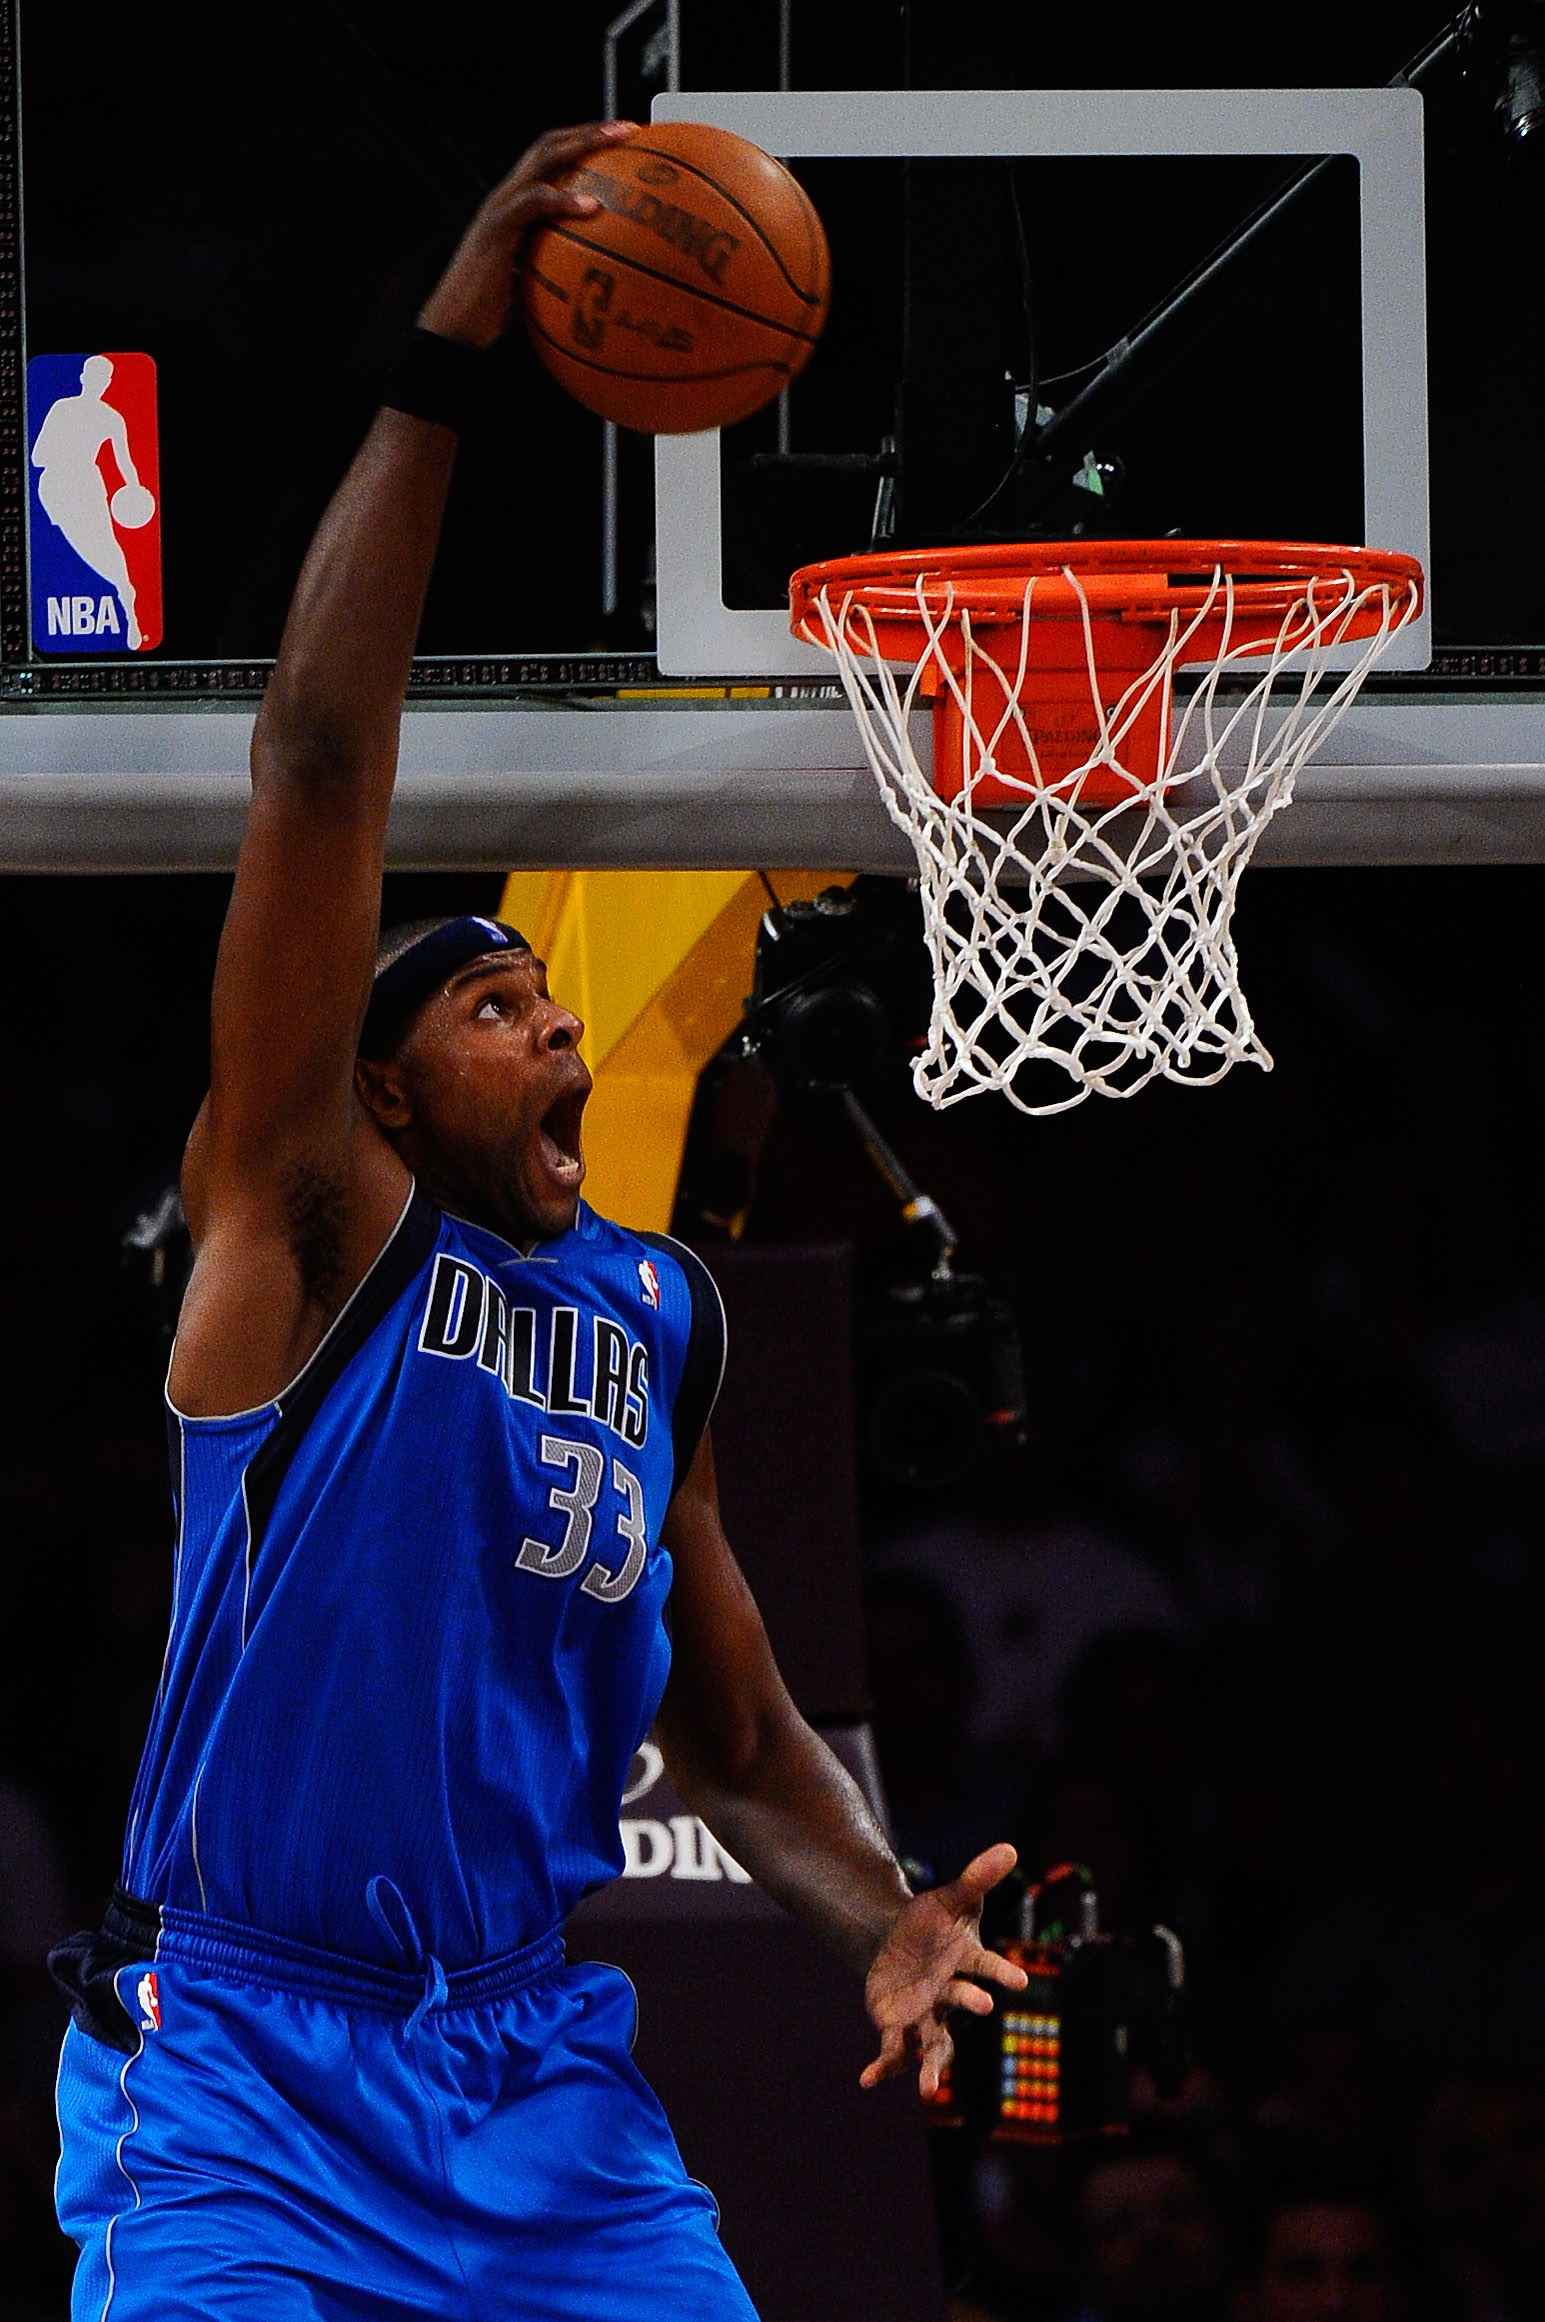 LOS ANGELES, CA - MAY 04:  Brendan Haywood #33 of the Dallas Mavericks dunks the ball in the second half while taking on the Los Angeles Lakers in Game Two of the Western Conference Semifinals in the 2011 NBA Playoffs at Staples Center on May 4, 2011 in L